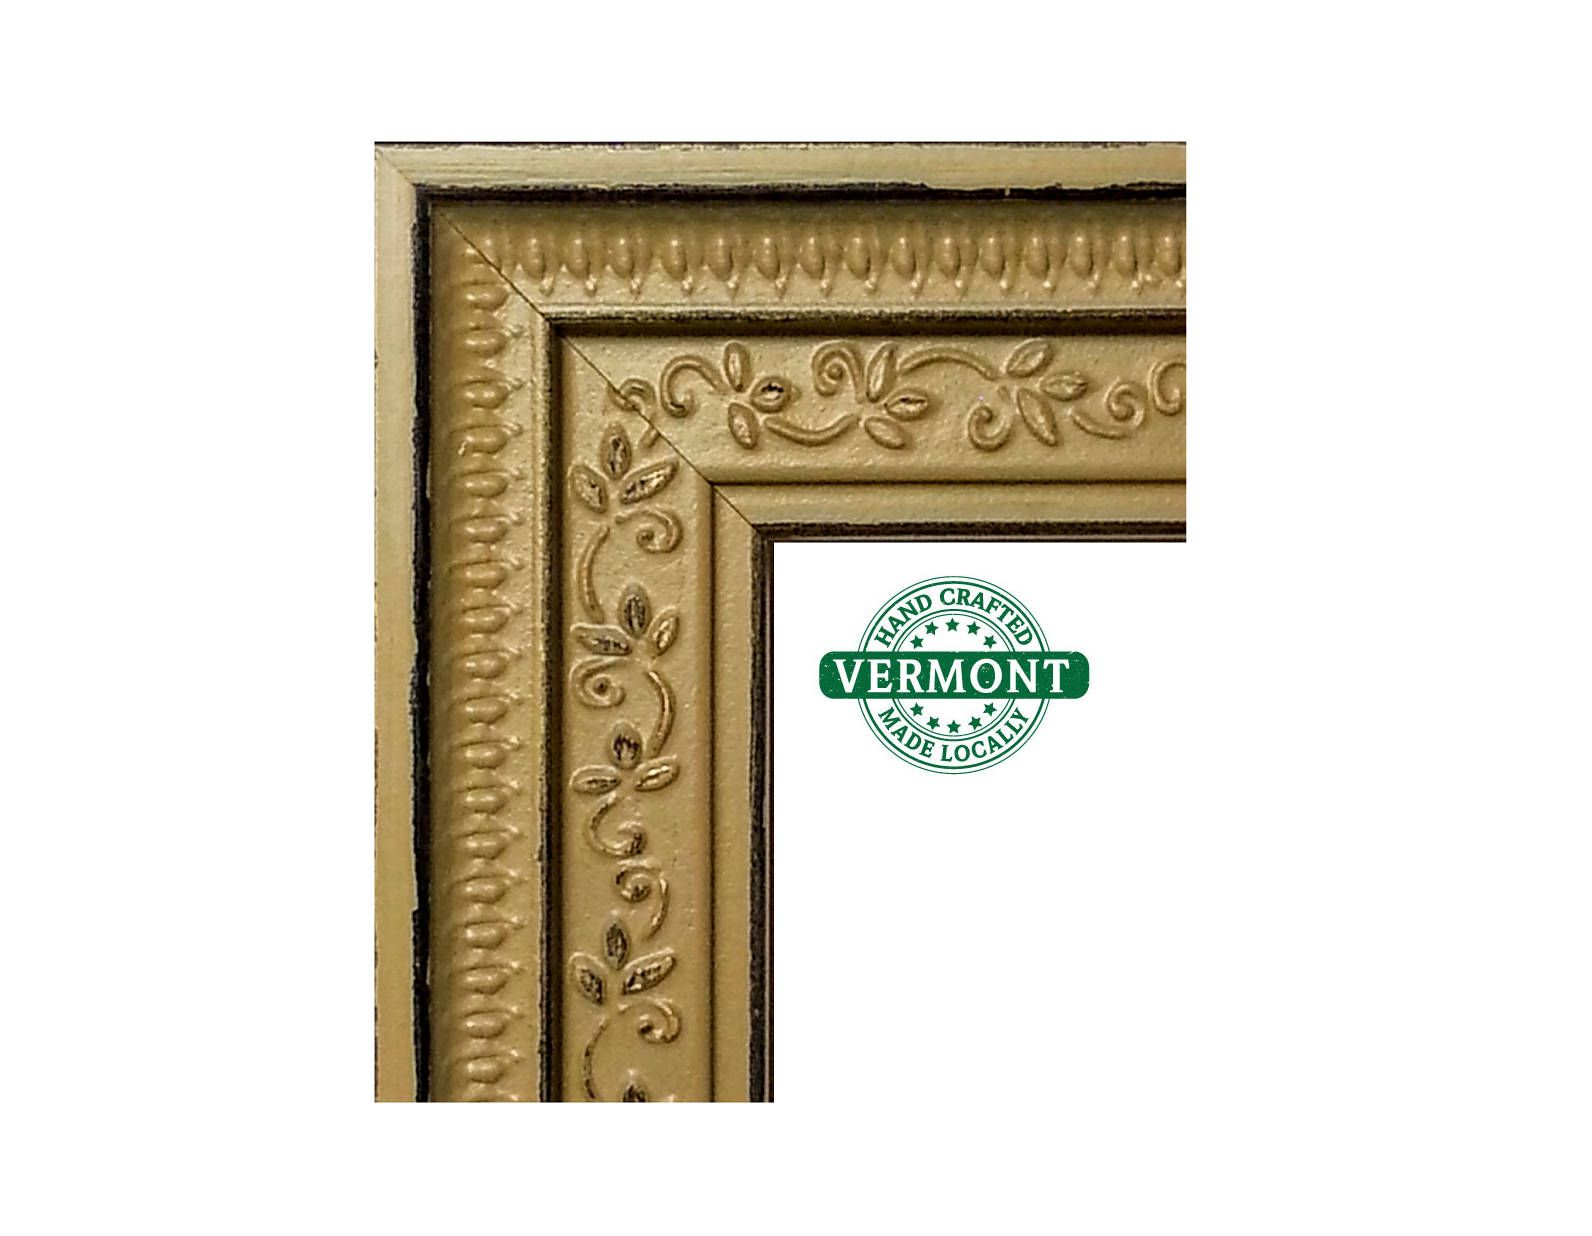 Ornate Gold Picture Frame Real Gold Leaf Photo Frame Gold Ornate Floral Wood 4x6 9x9 8x10 10x12 1 Gold Picture Frames Gold Ornate Picture Frames Frame